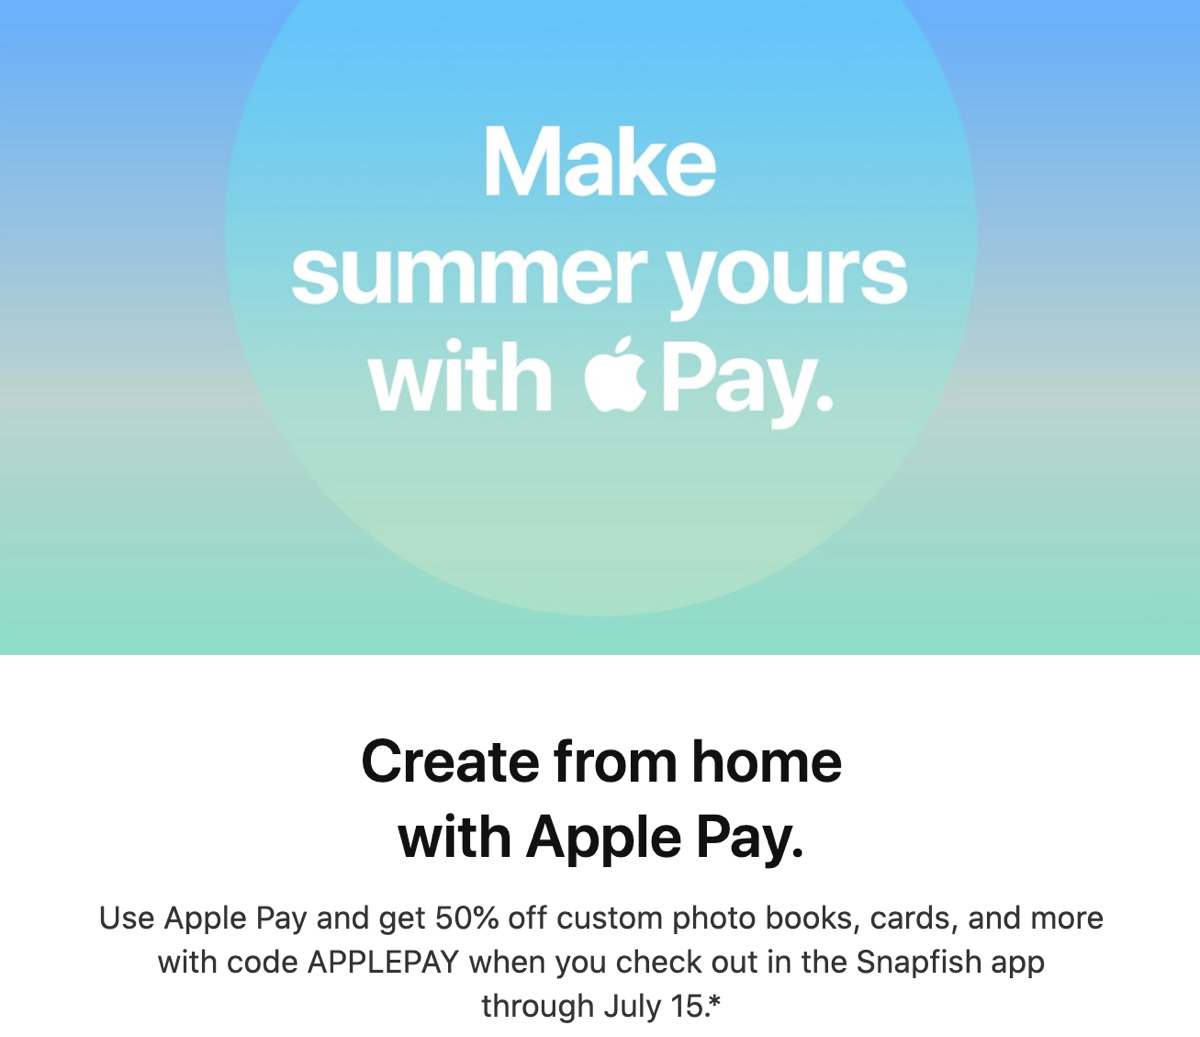 Apple Pay Promo Offers 50% Off Snapfish Purchases